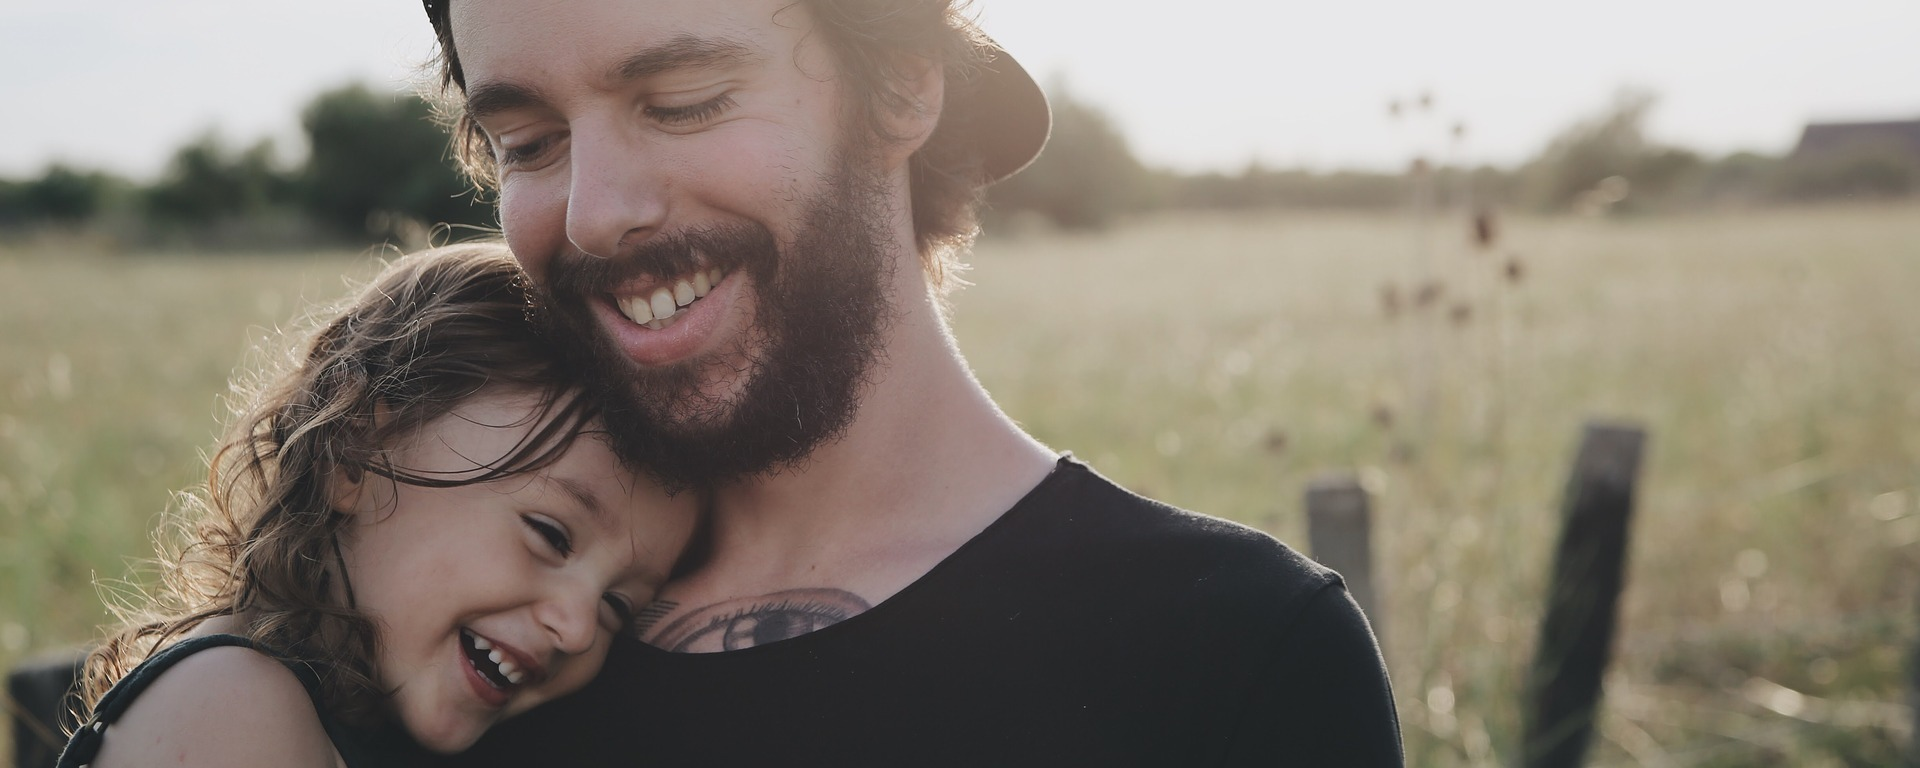 people,father,daughter,smile,happy,hug,carry,love,field,beard,cap,child,outdoors,countryside,happiness,DON CHARISMA